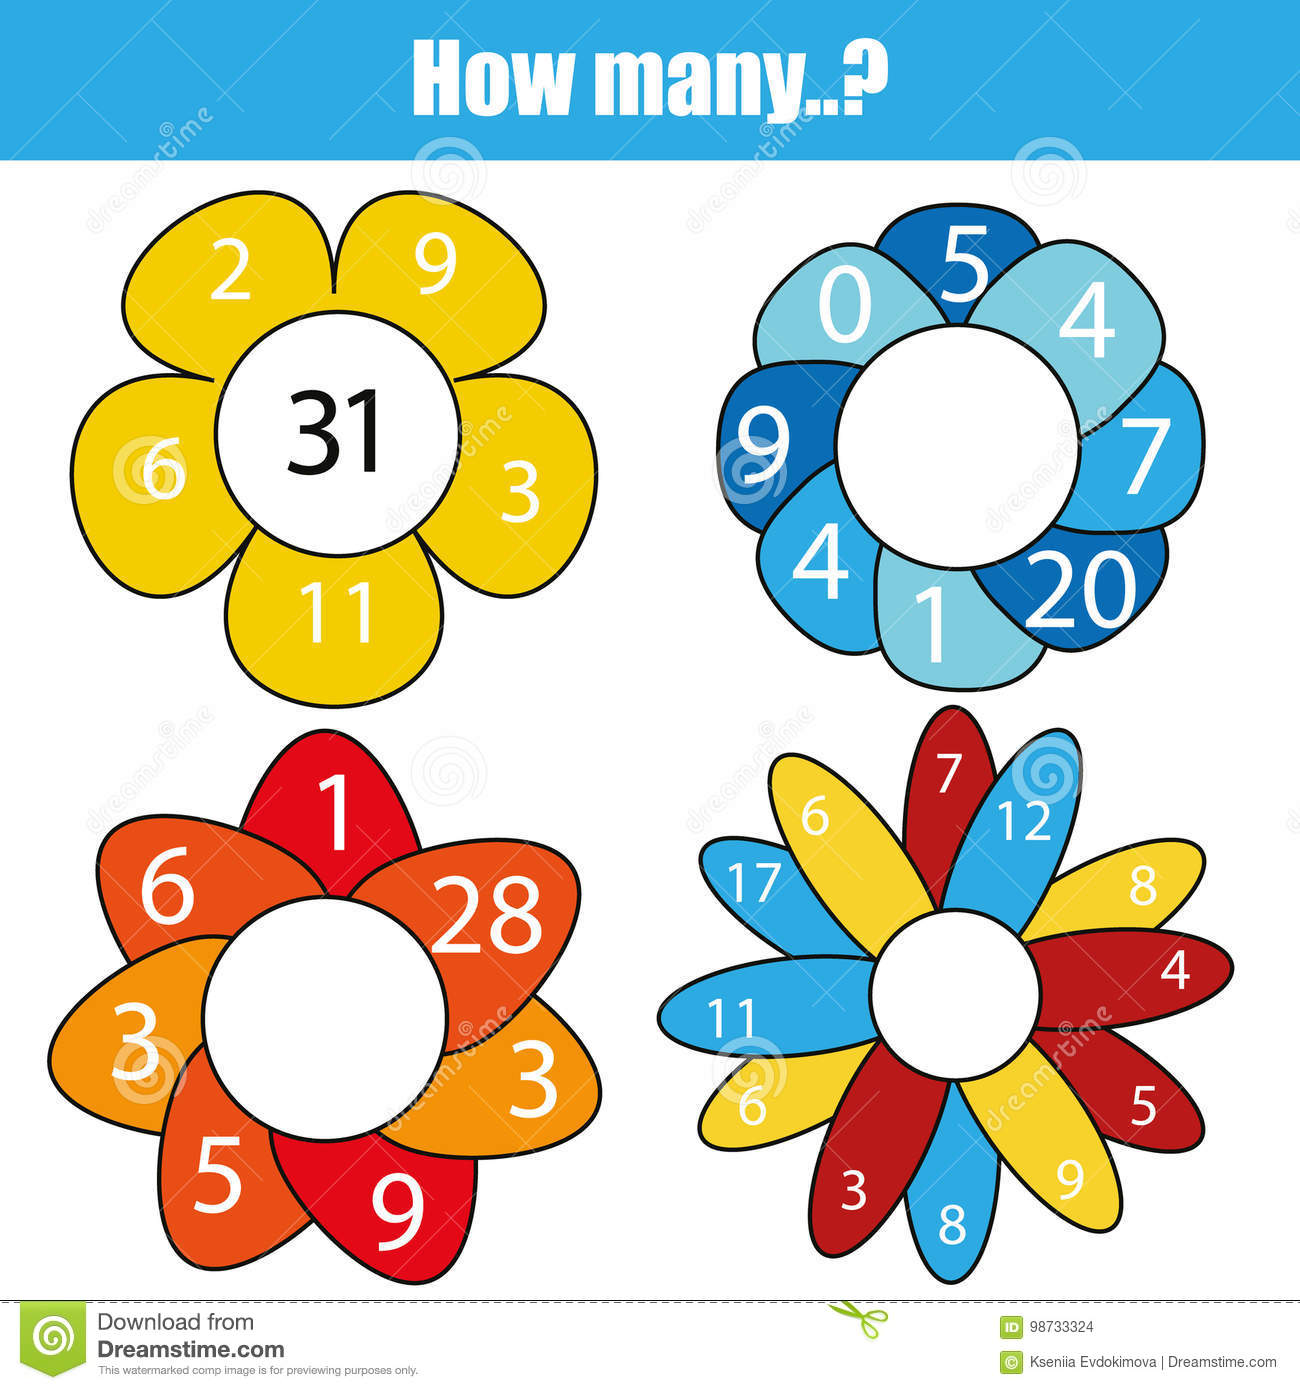 Counting Educational Children Game Kids Activity Worksheet How Many Objects Task Mathematics